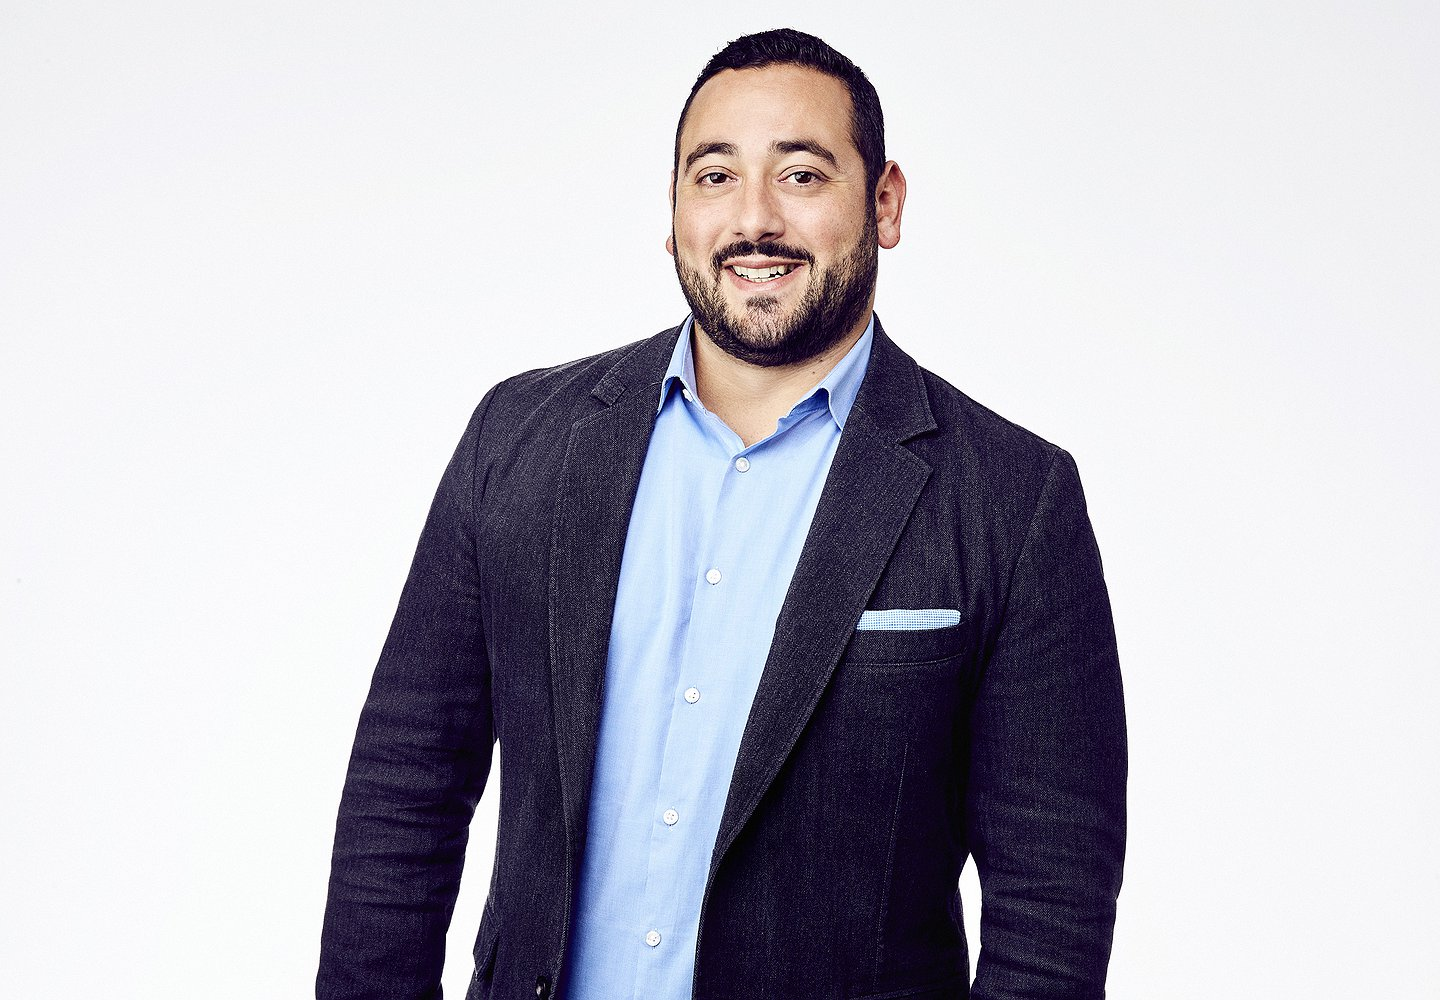 WarnerMedia's Dan Aversano: Bringing TV Attribution Into Focus